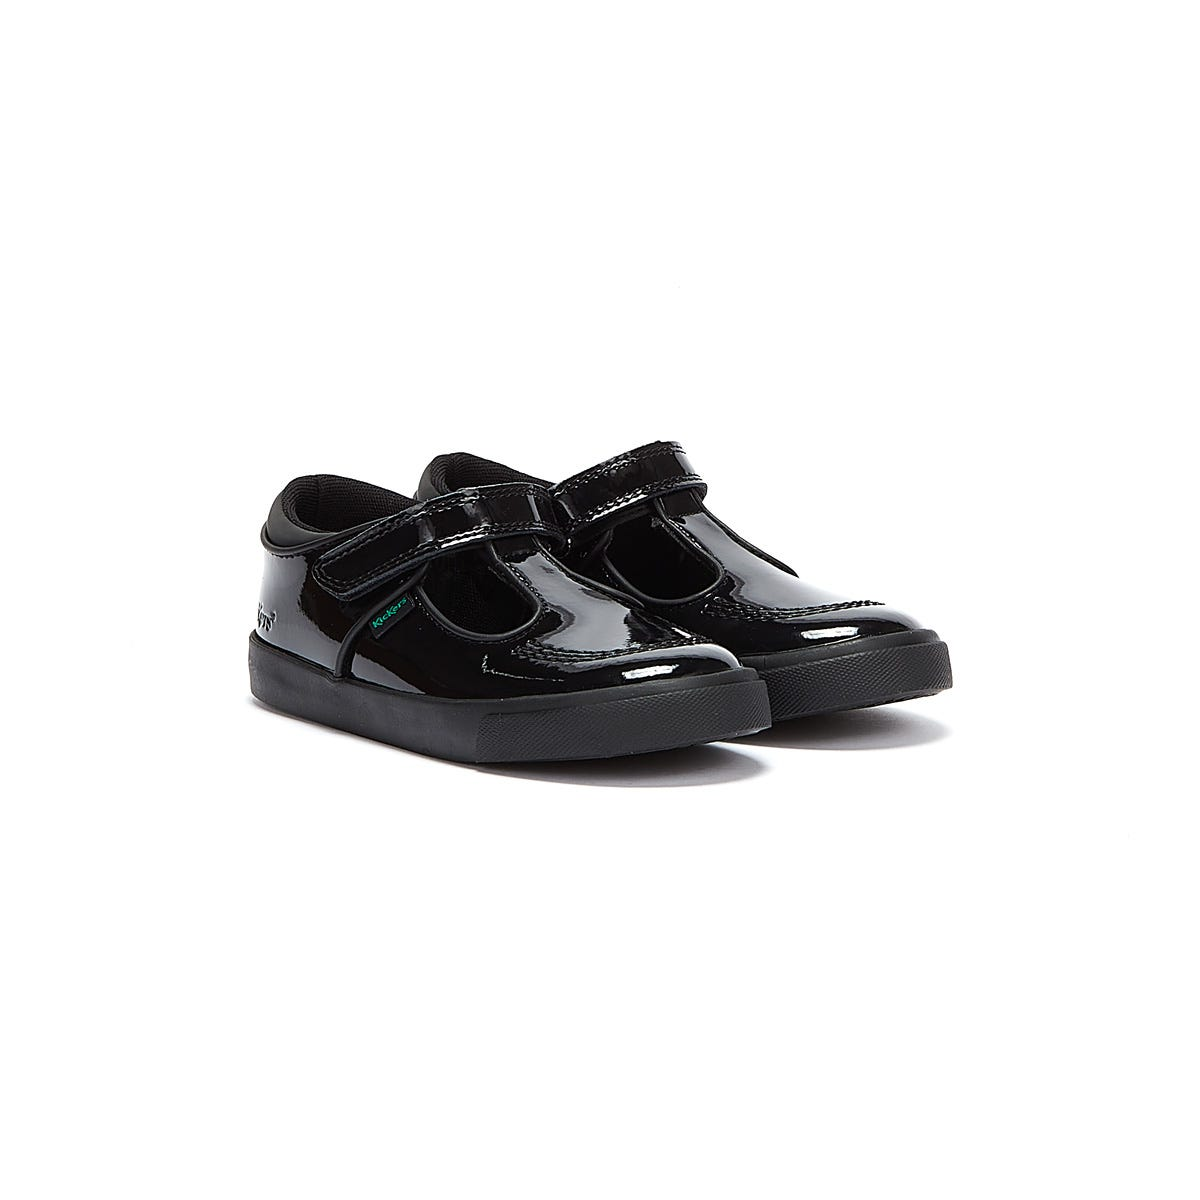 Trainers & Running Shoes Kickers Infant Black Tovni T Bar Patent Leather Shoes